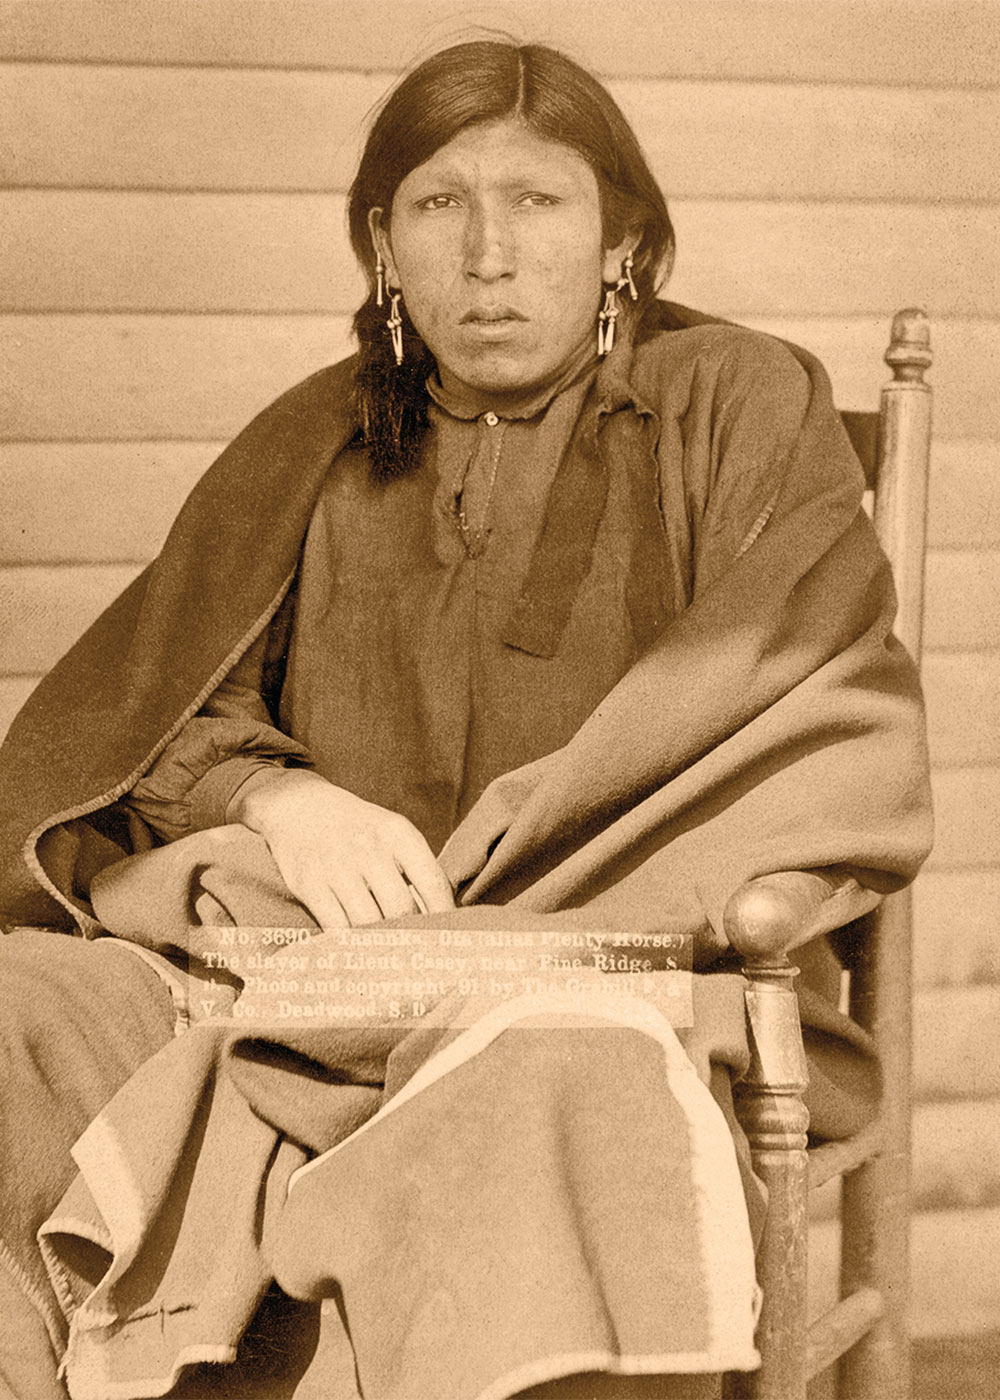 Brulé Lakota Plenty Horses true west magazine